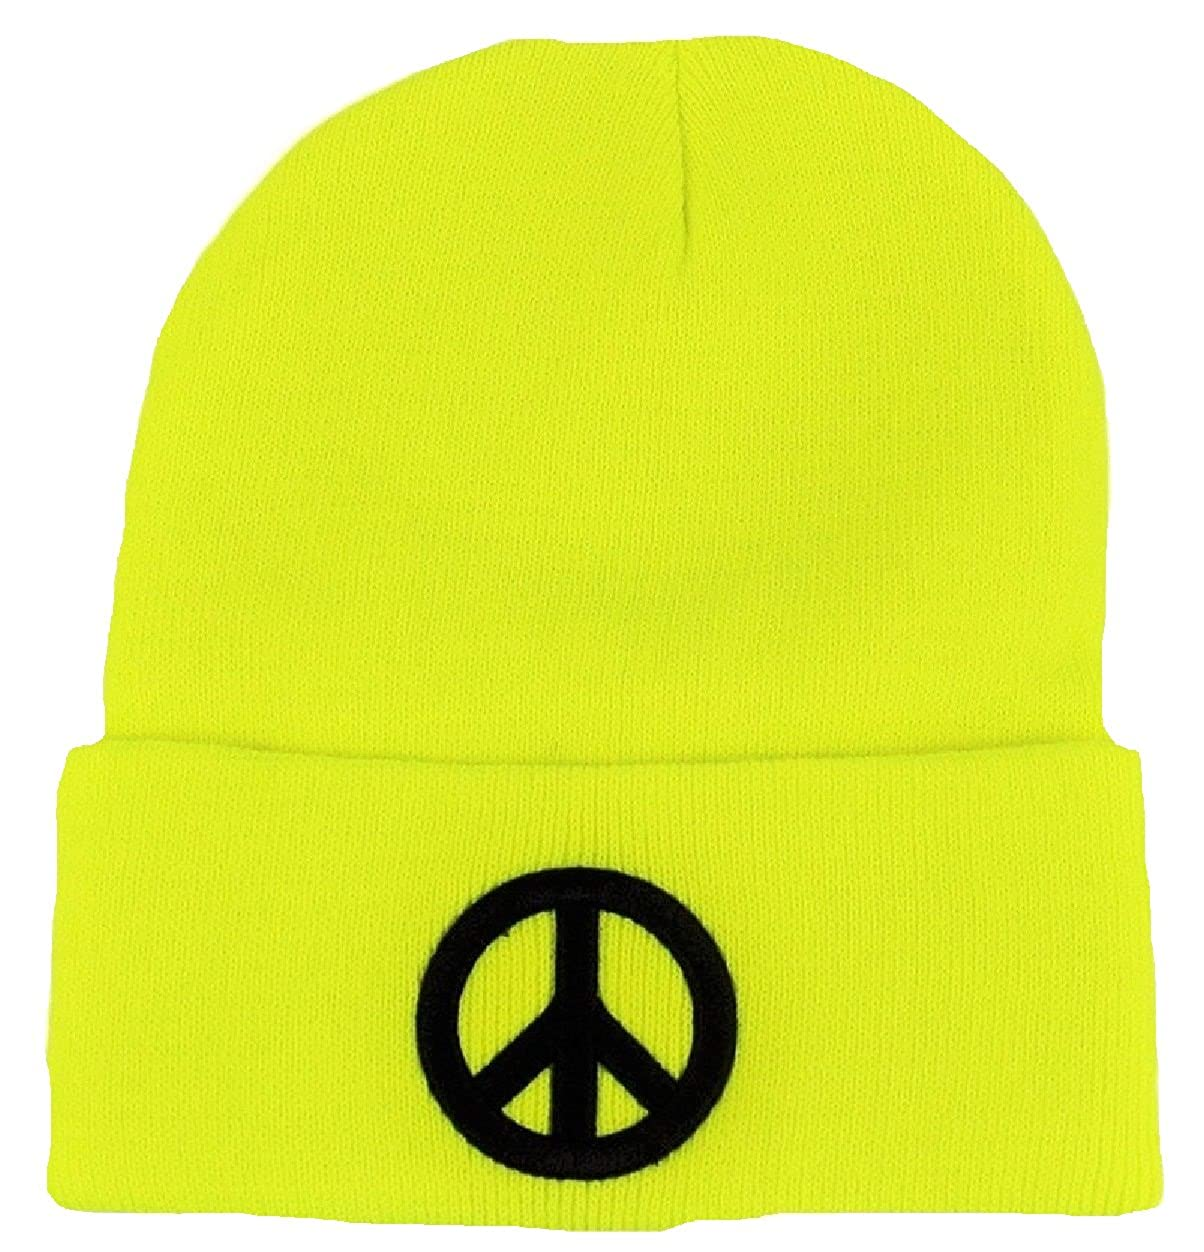 Yellow Beanie Hat with Peace Symbol knitted with turn up and embroidered  design  Amazon.co.uk  Clothing 648104609b0